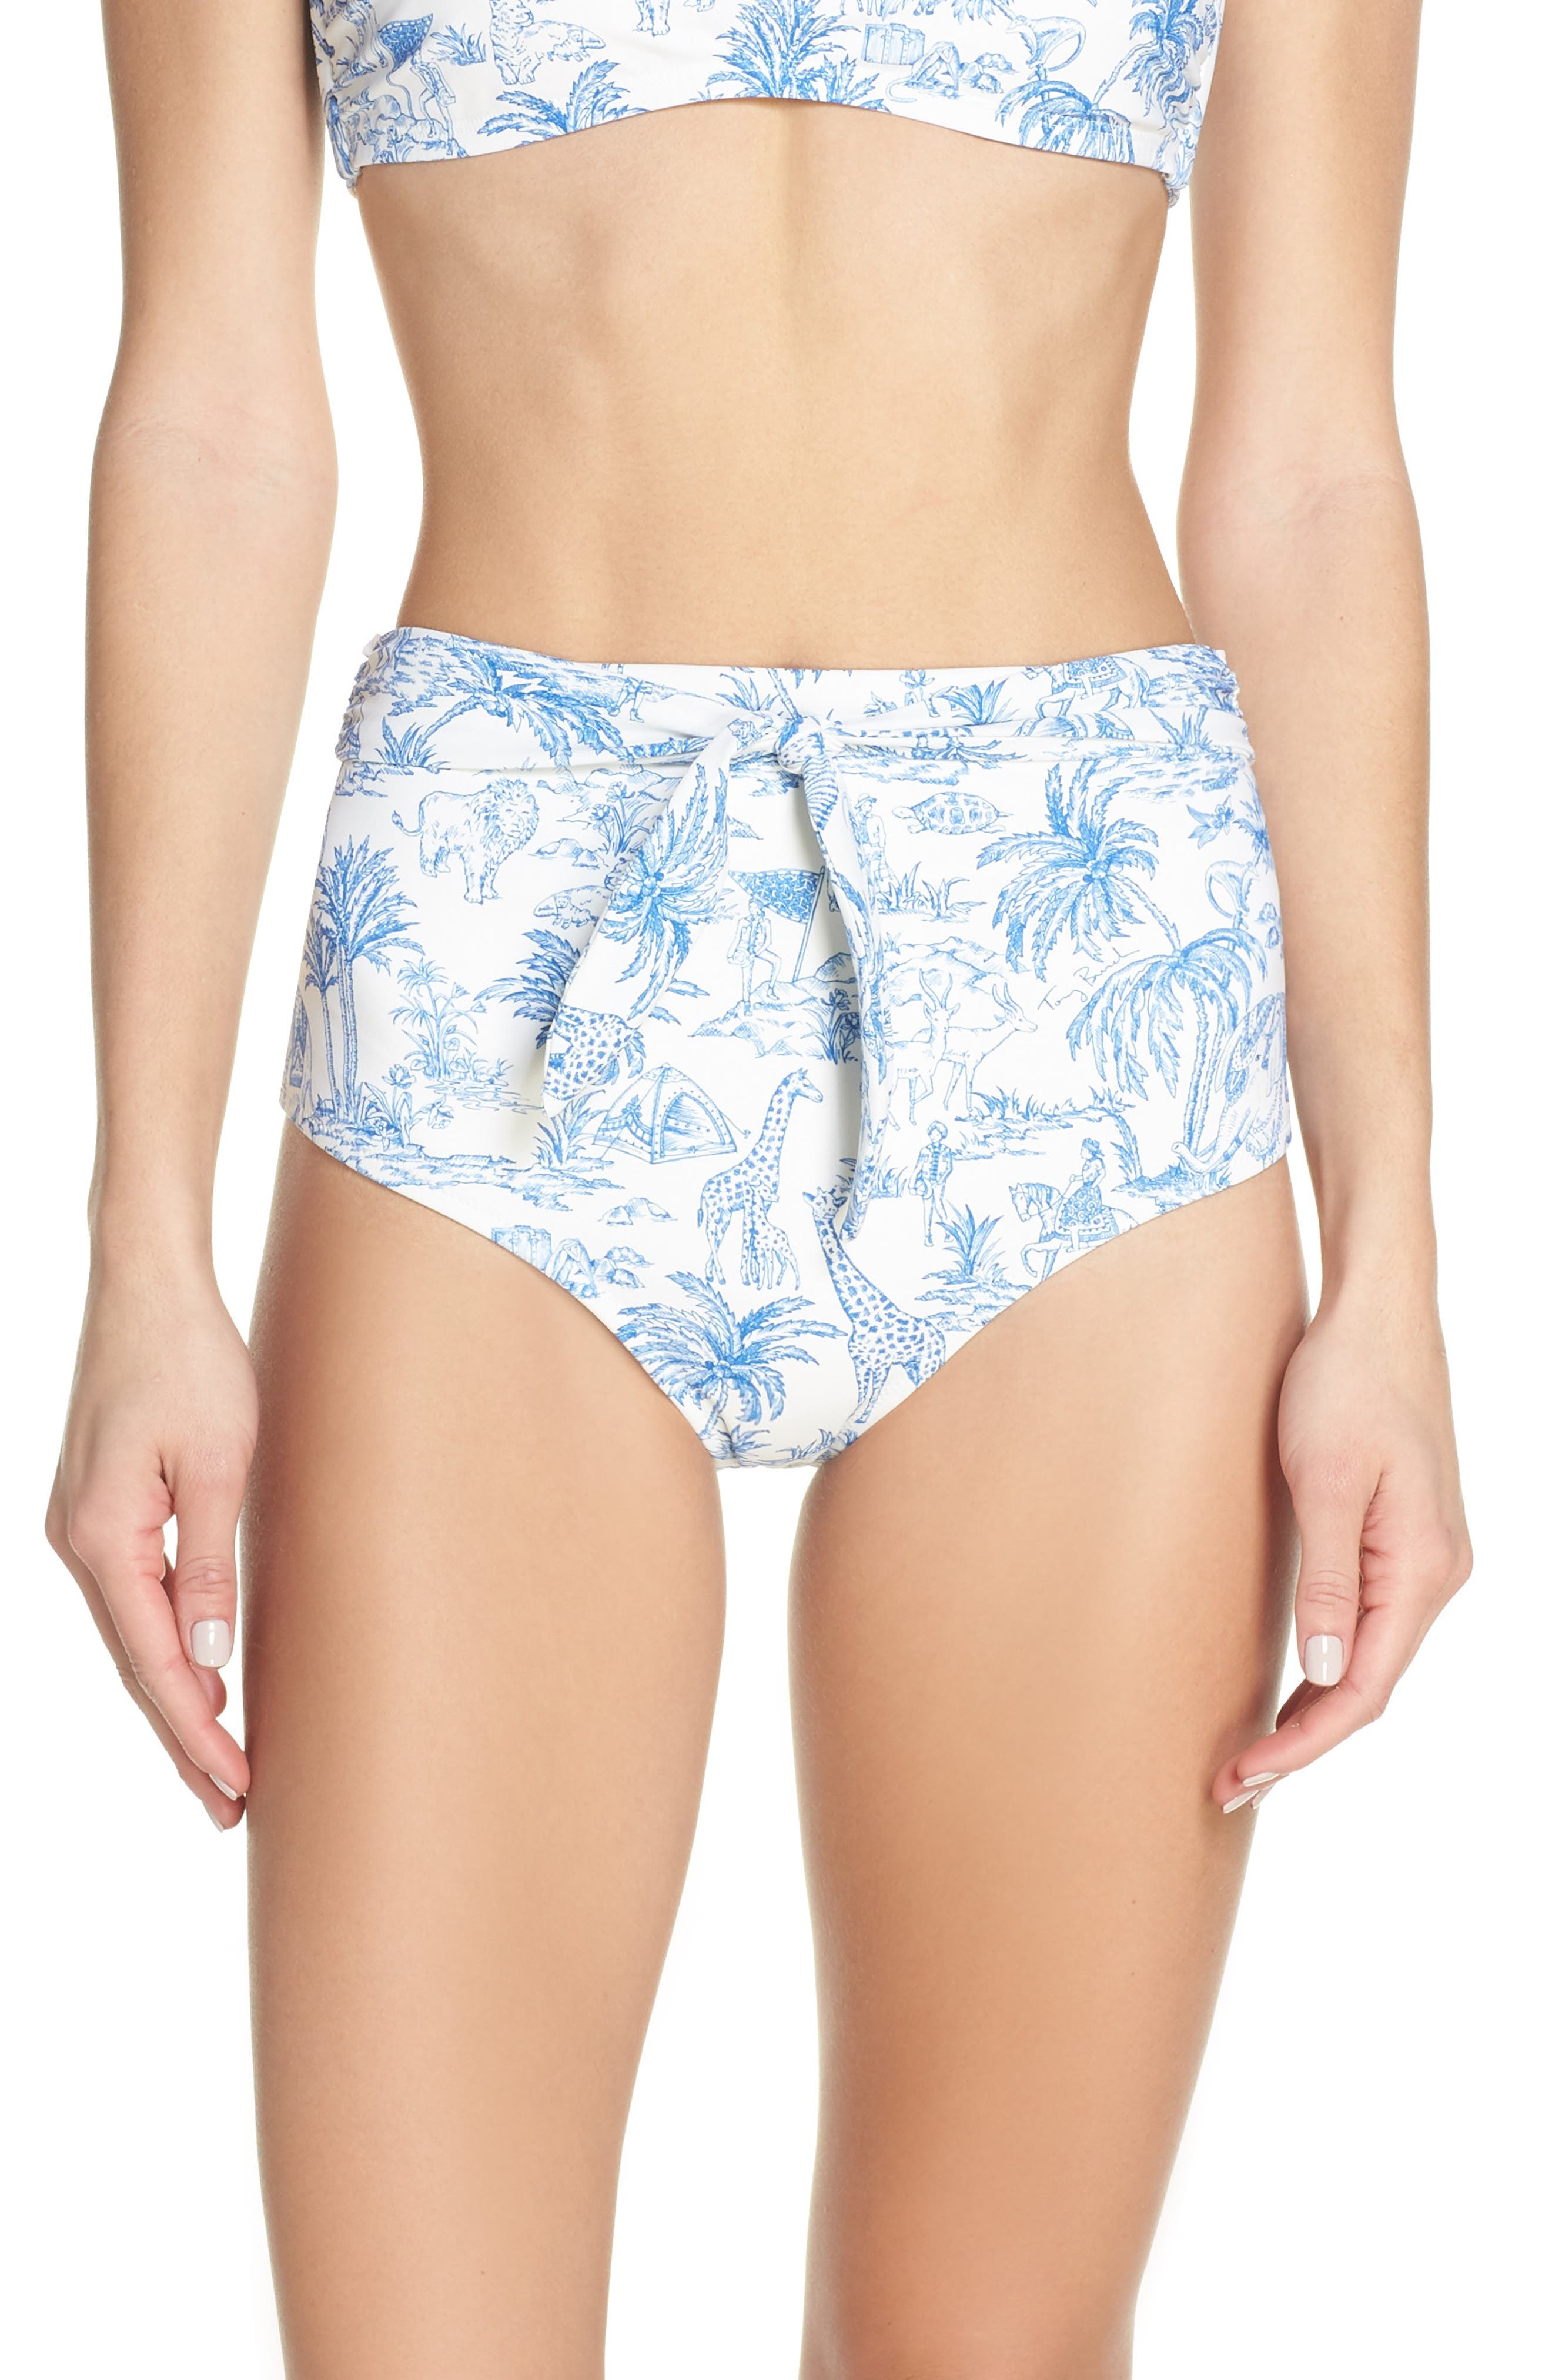 TORY BURCH,                             Sash Tie High Waist Bikini Bottoms,                             Main thumbnail 1, color,                             IVORY FAR AND AWAY